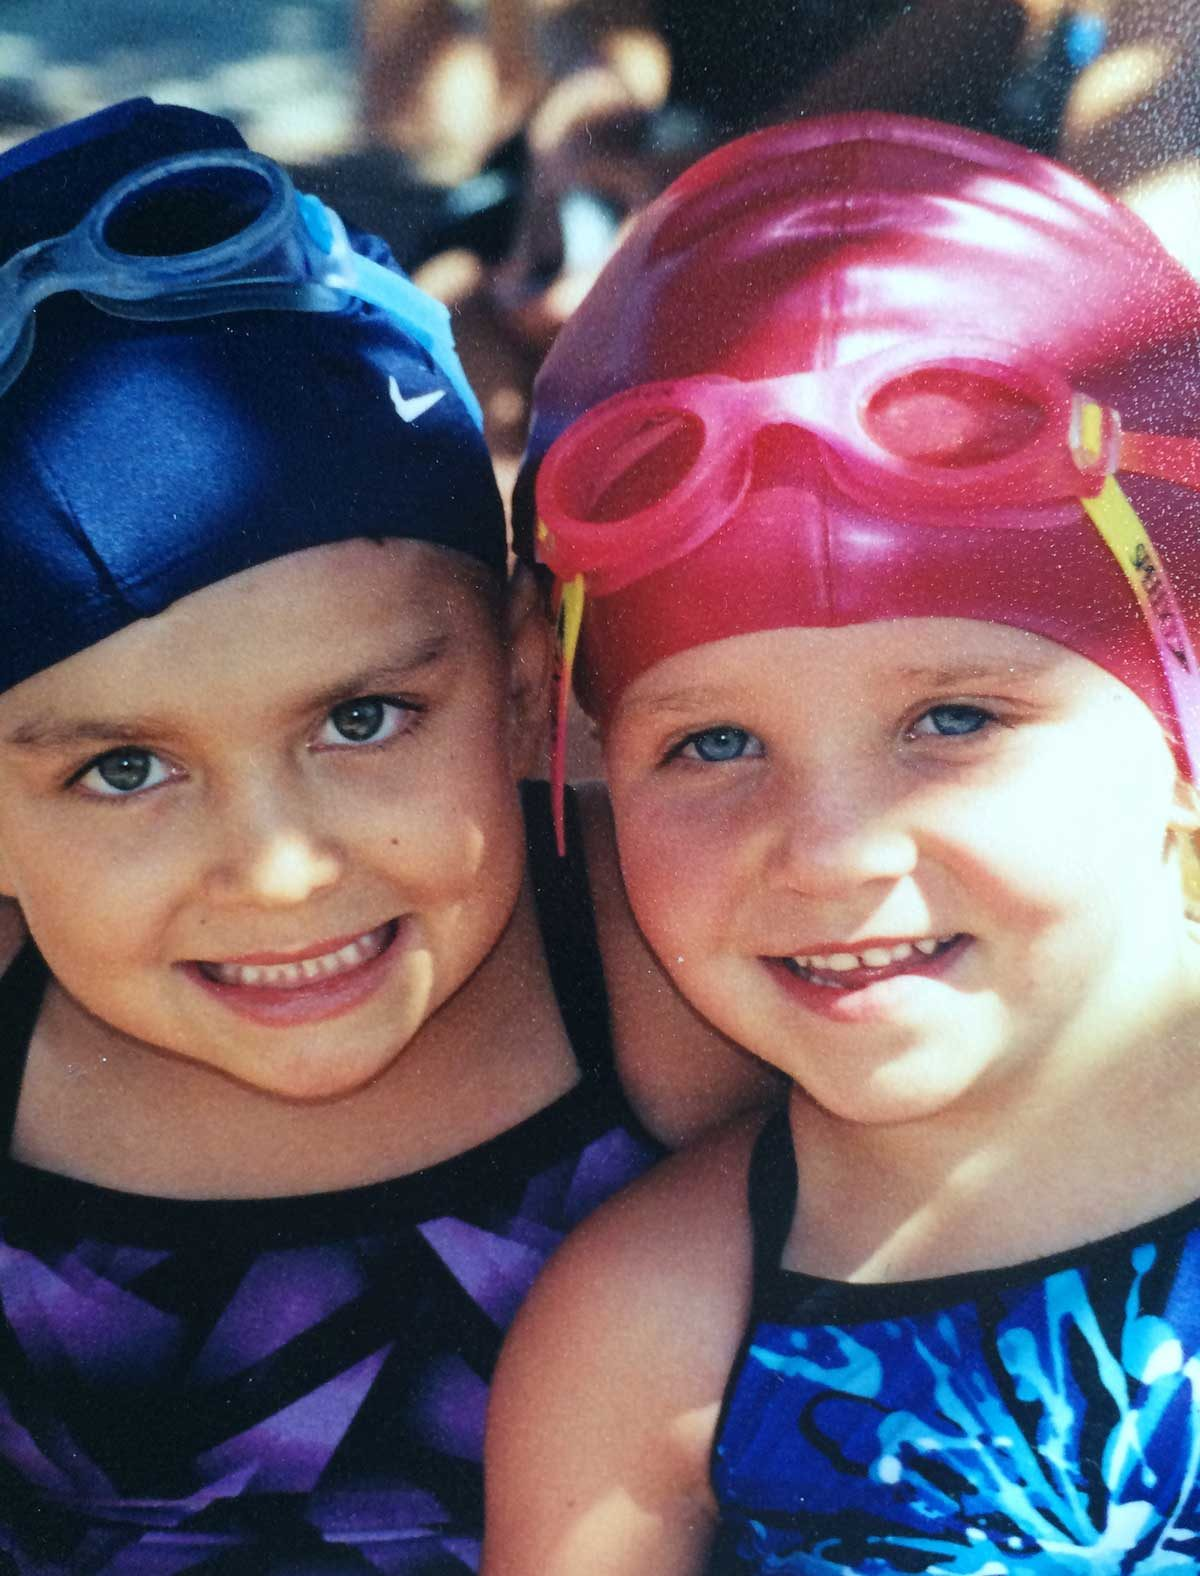 Darby and Gabby at the pool